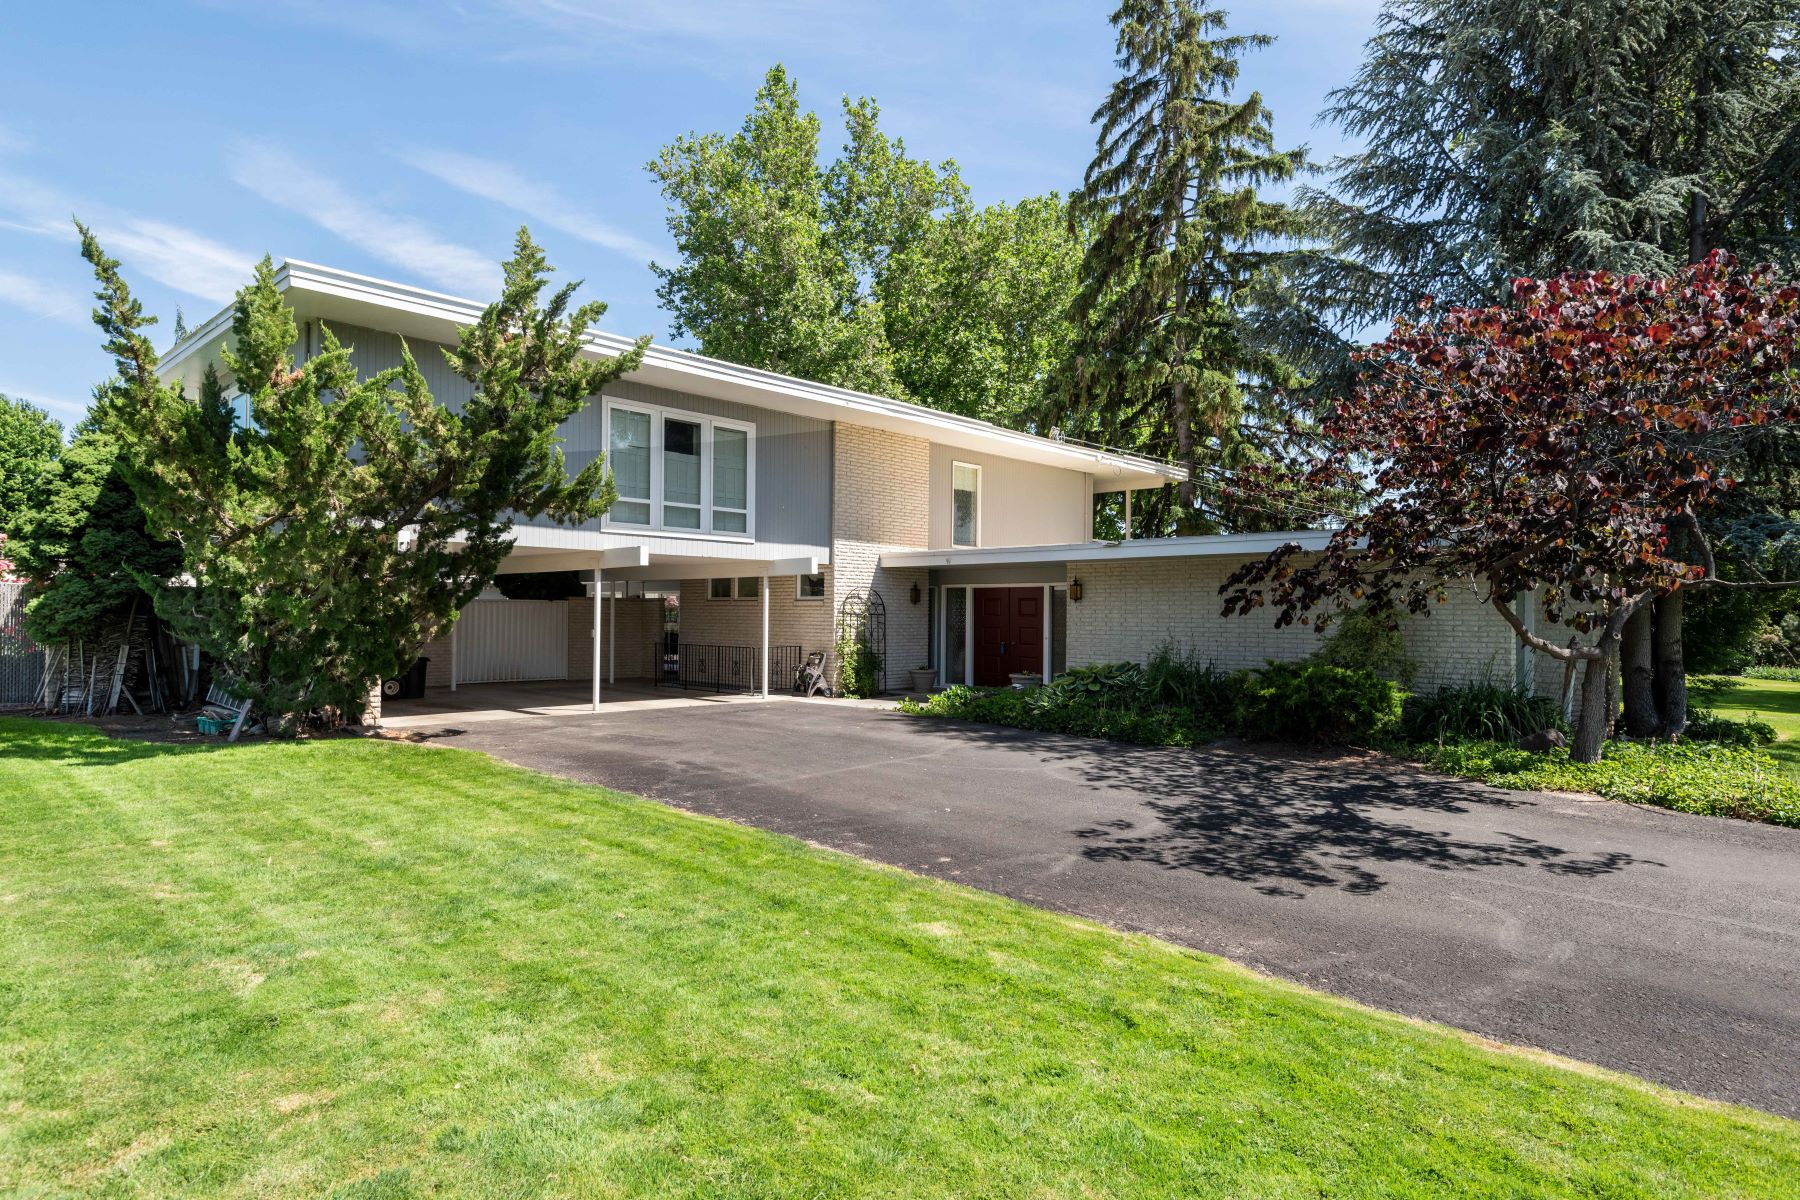 Single Family Homes for Sale at Beautiful Home, Pool, & River Views 509 N Rd 49 Pasco, Washington 99301 United States